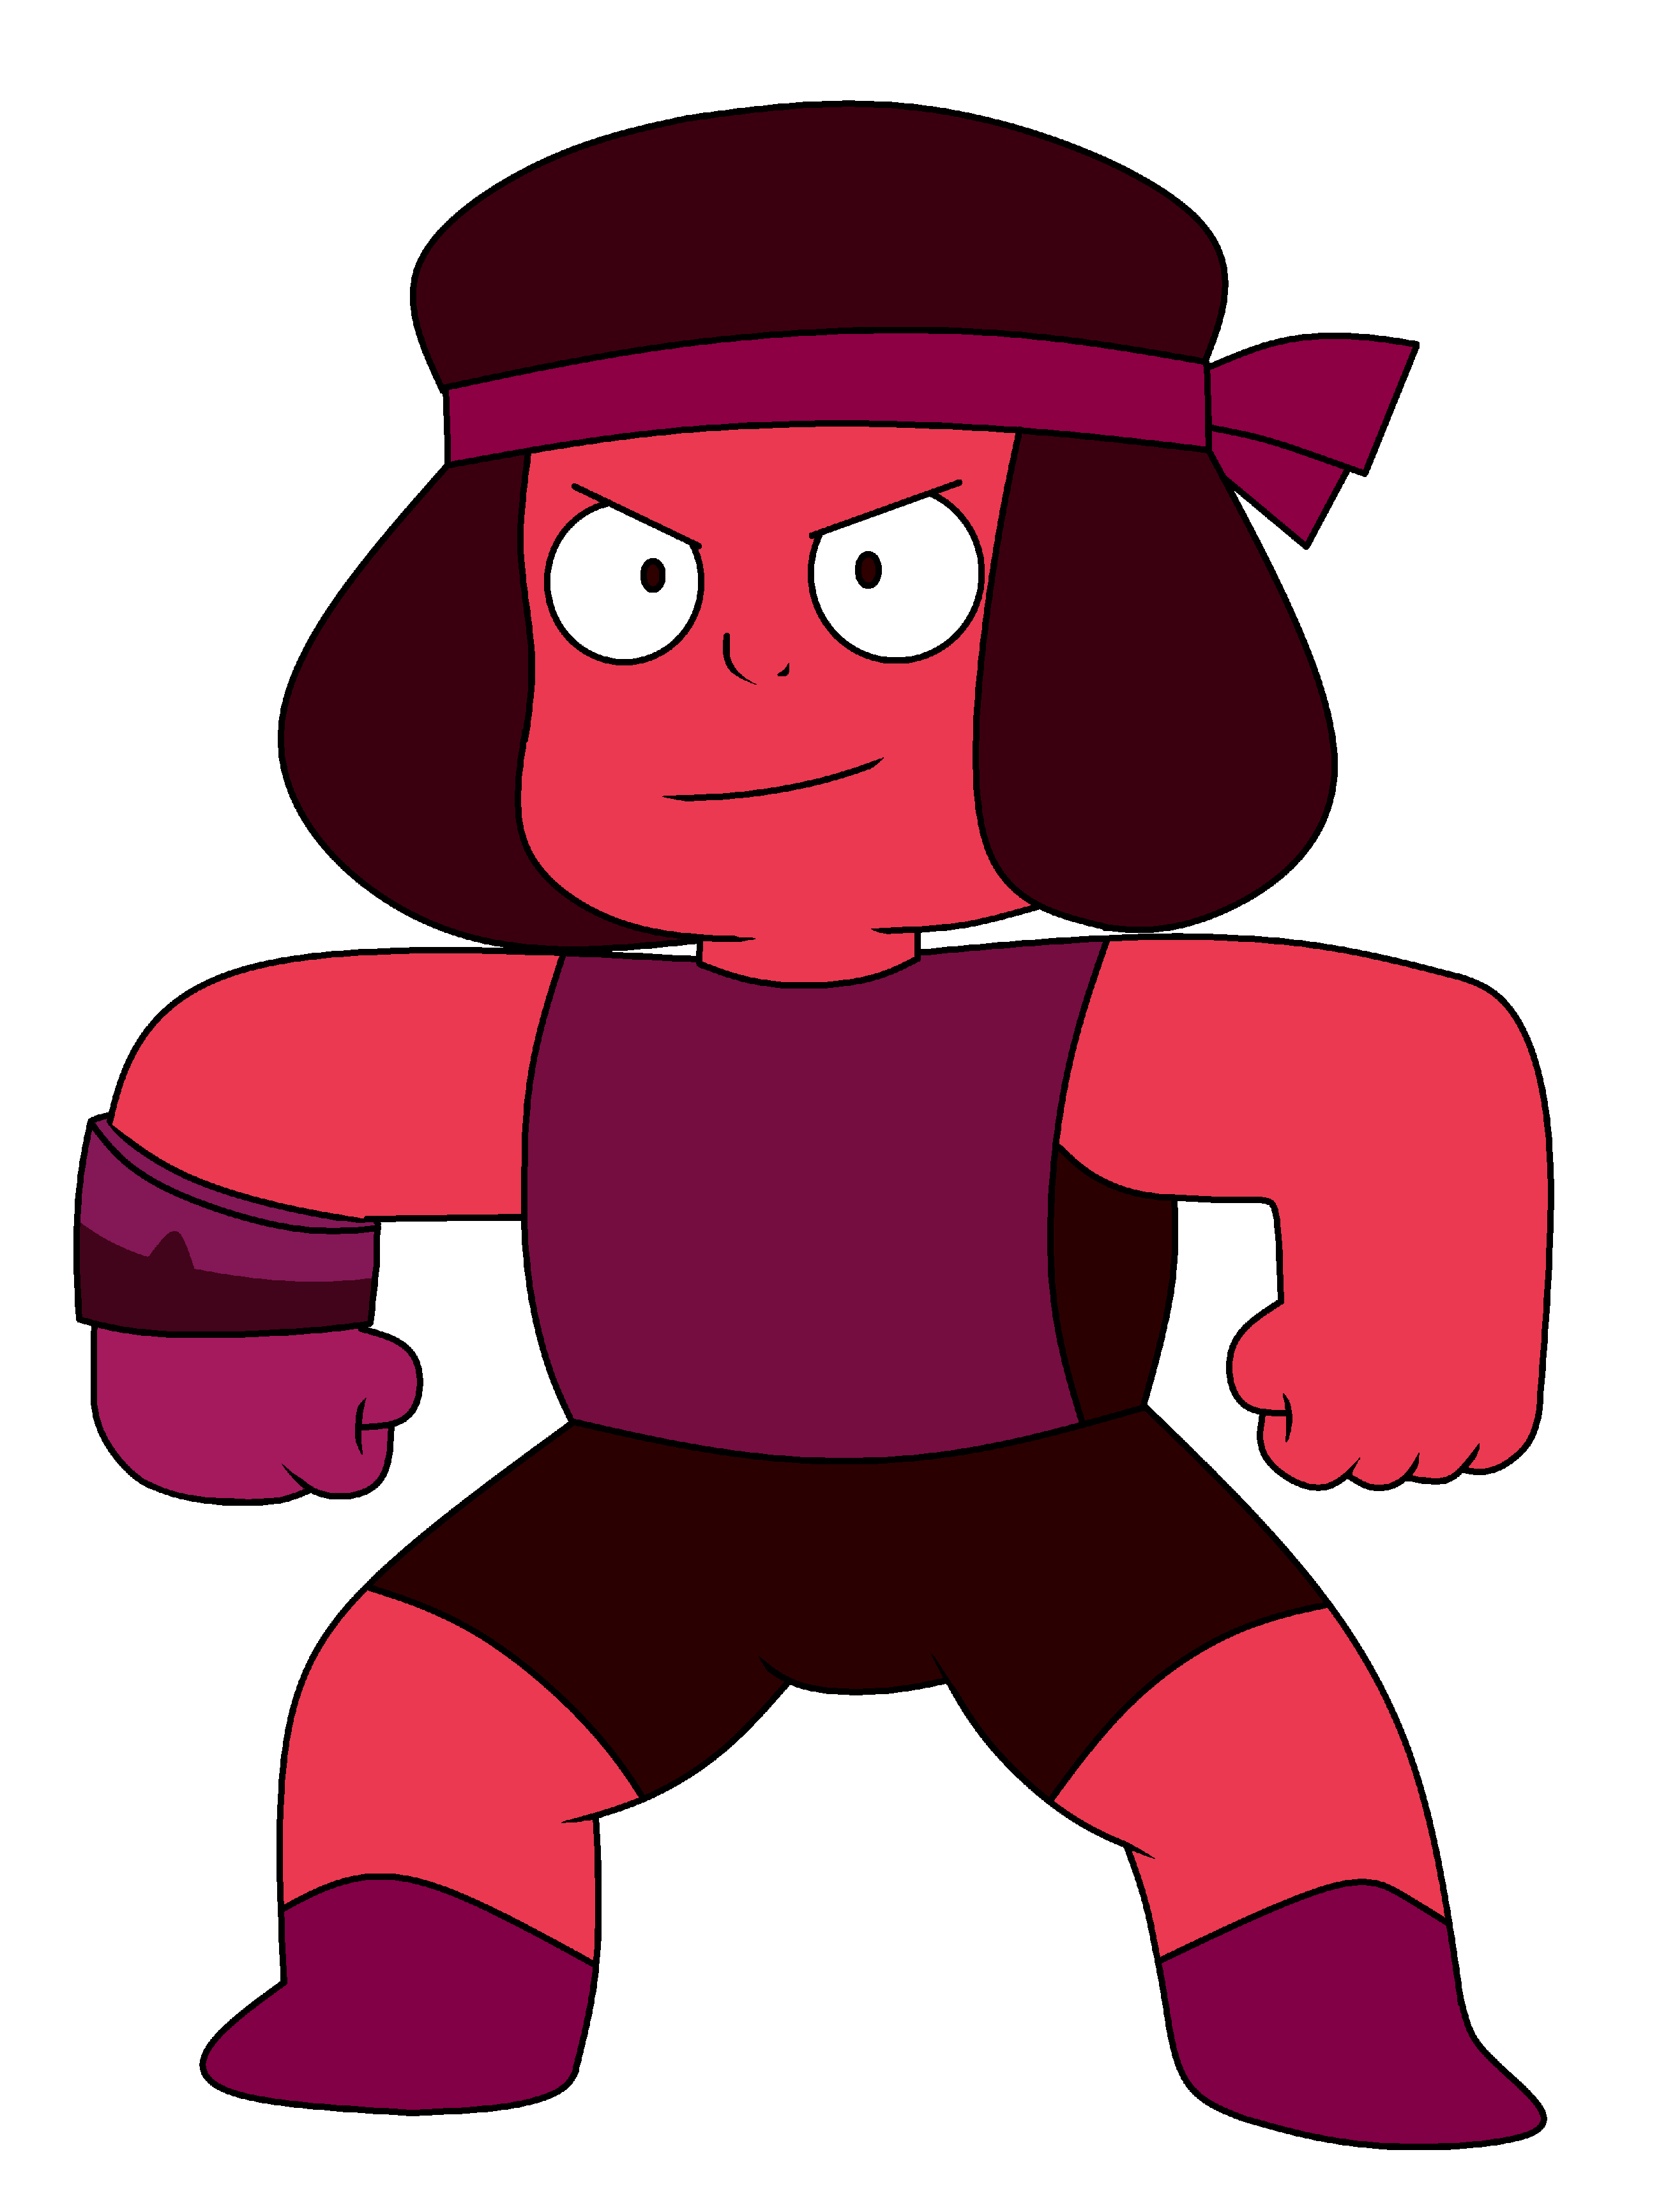 File:Ruby - Weaponized.png